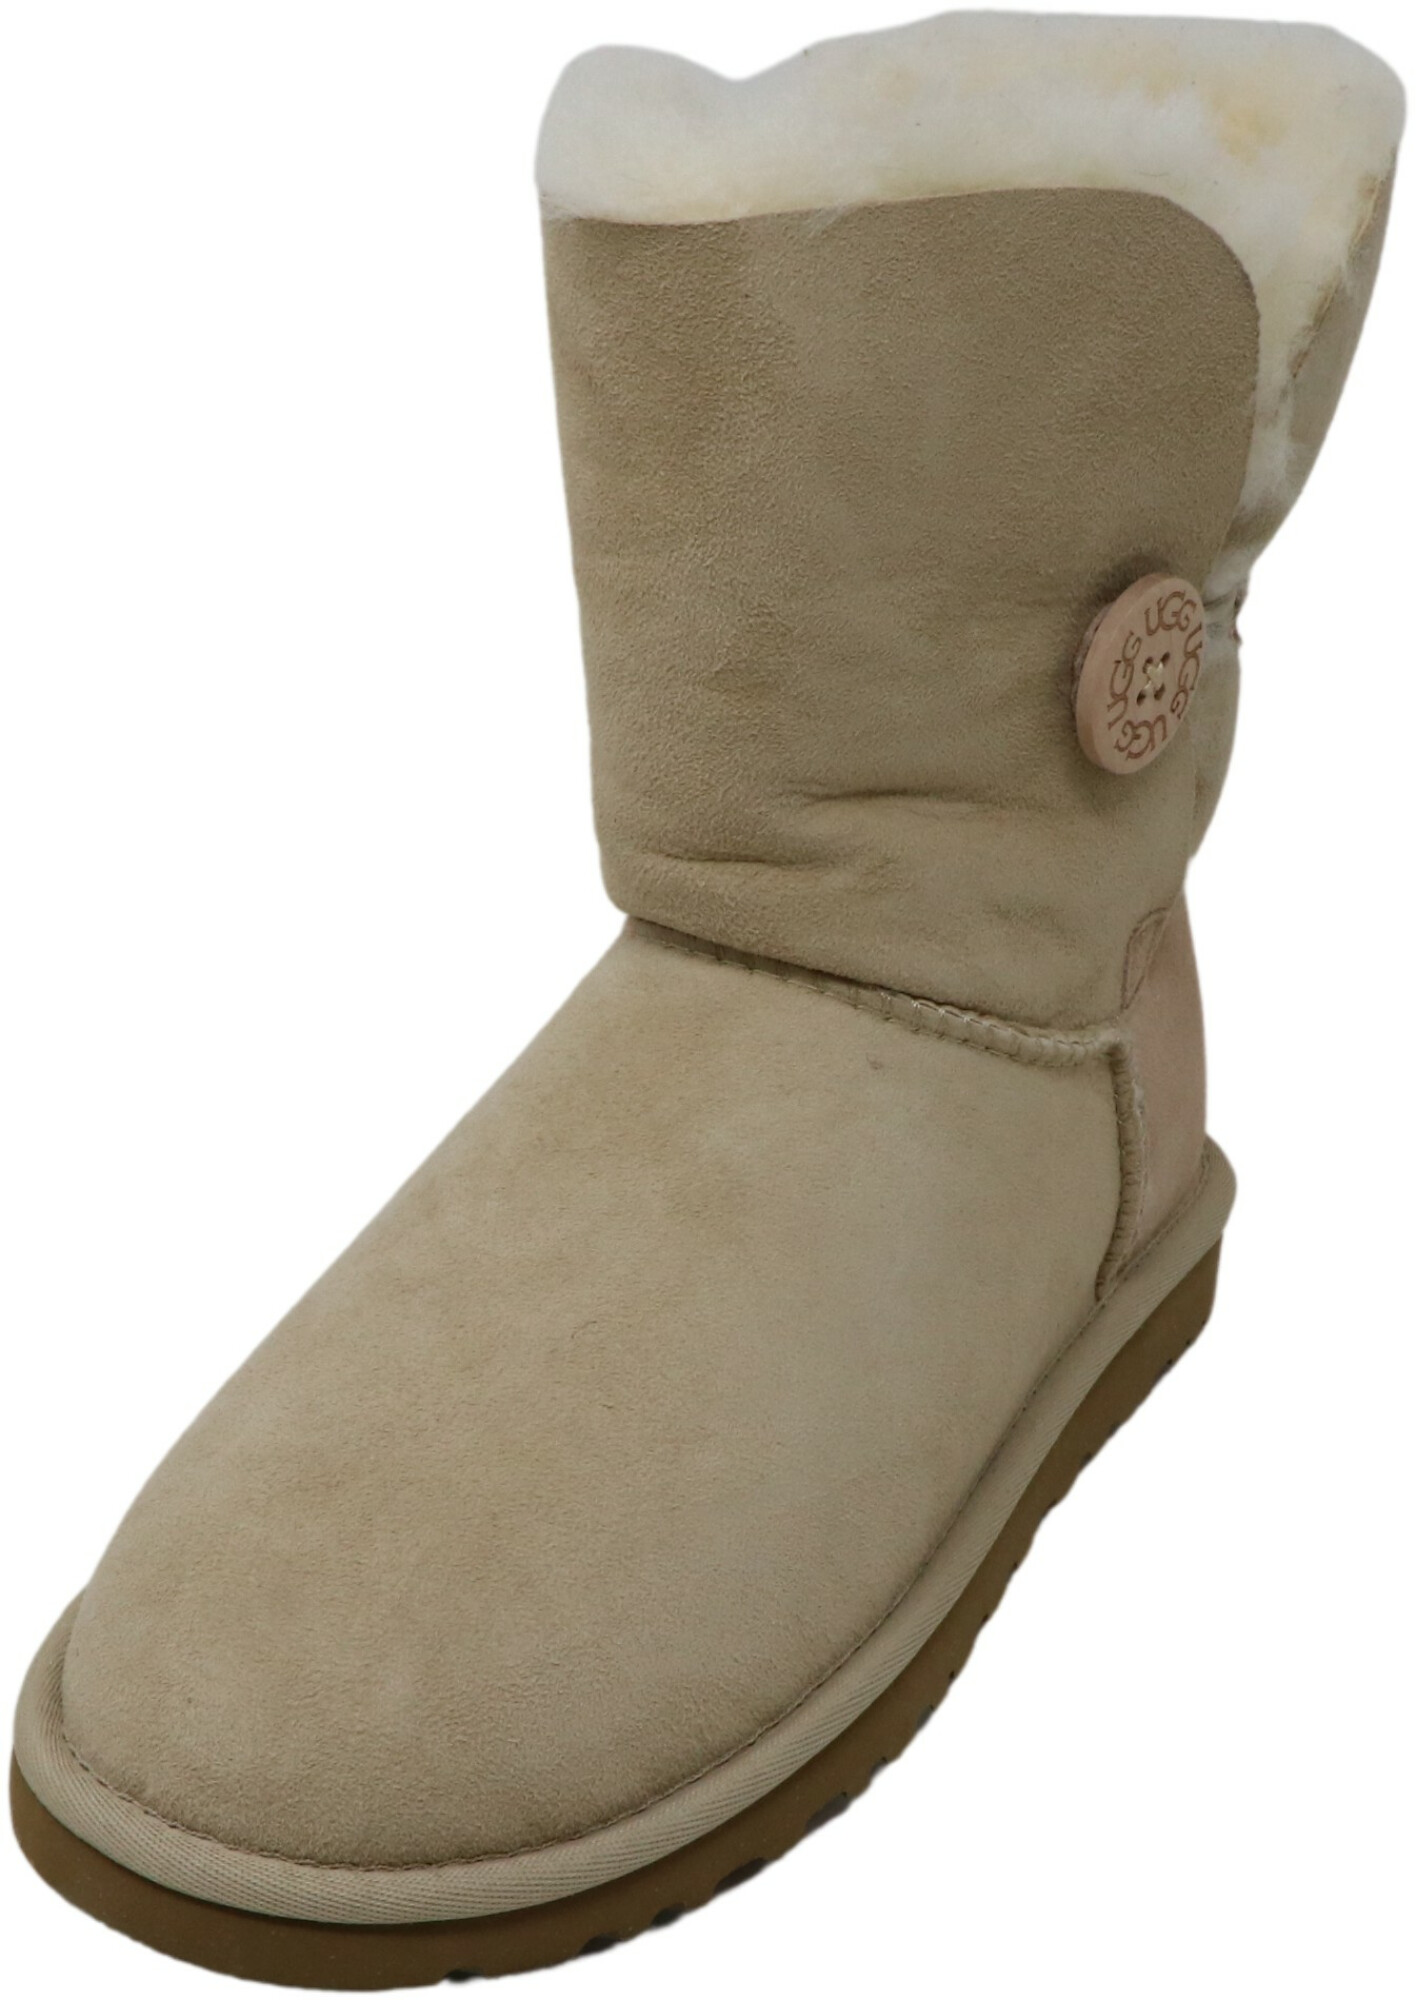 Ugg Women's Bailey Button Sand Ankle-High Suede Boot - 6M